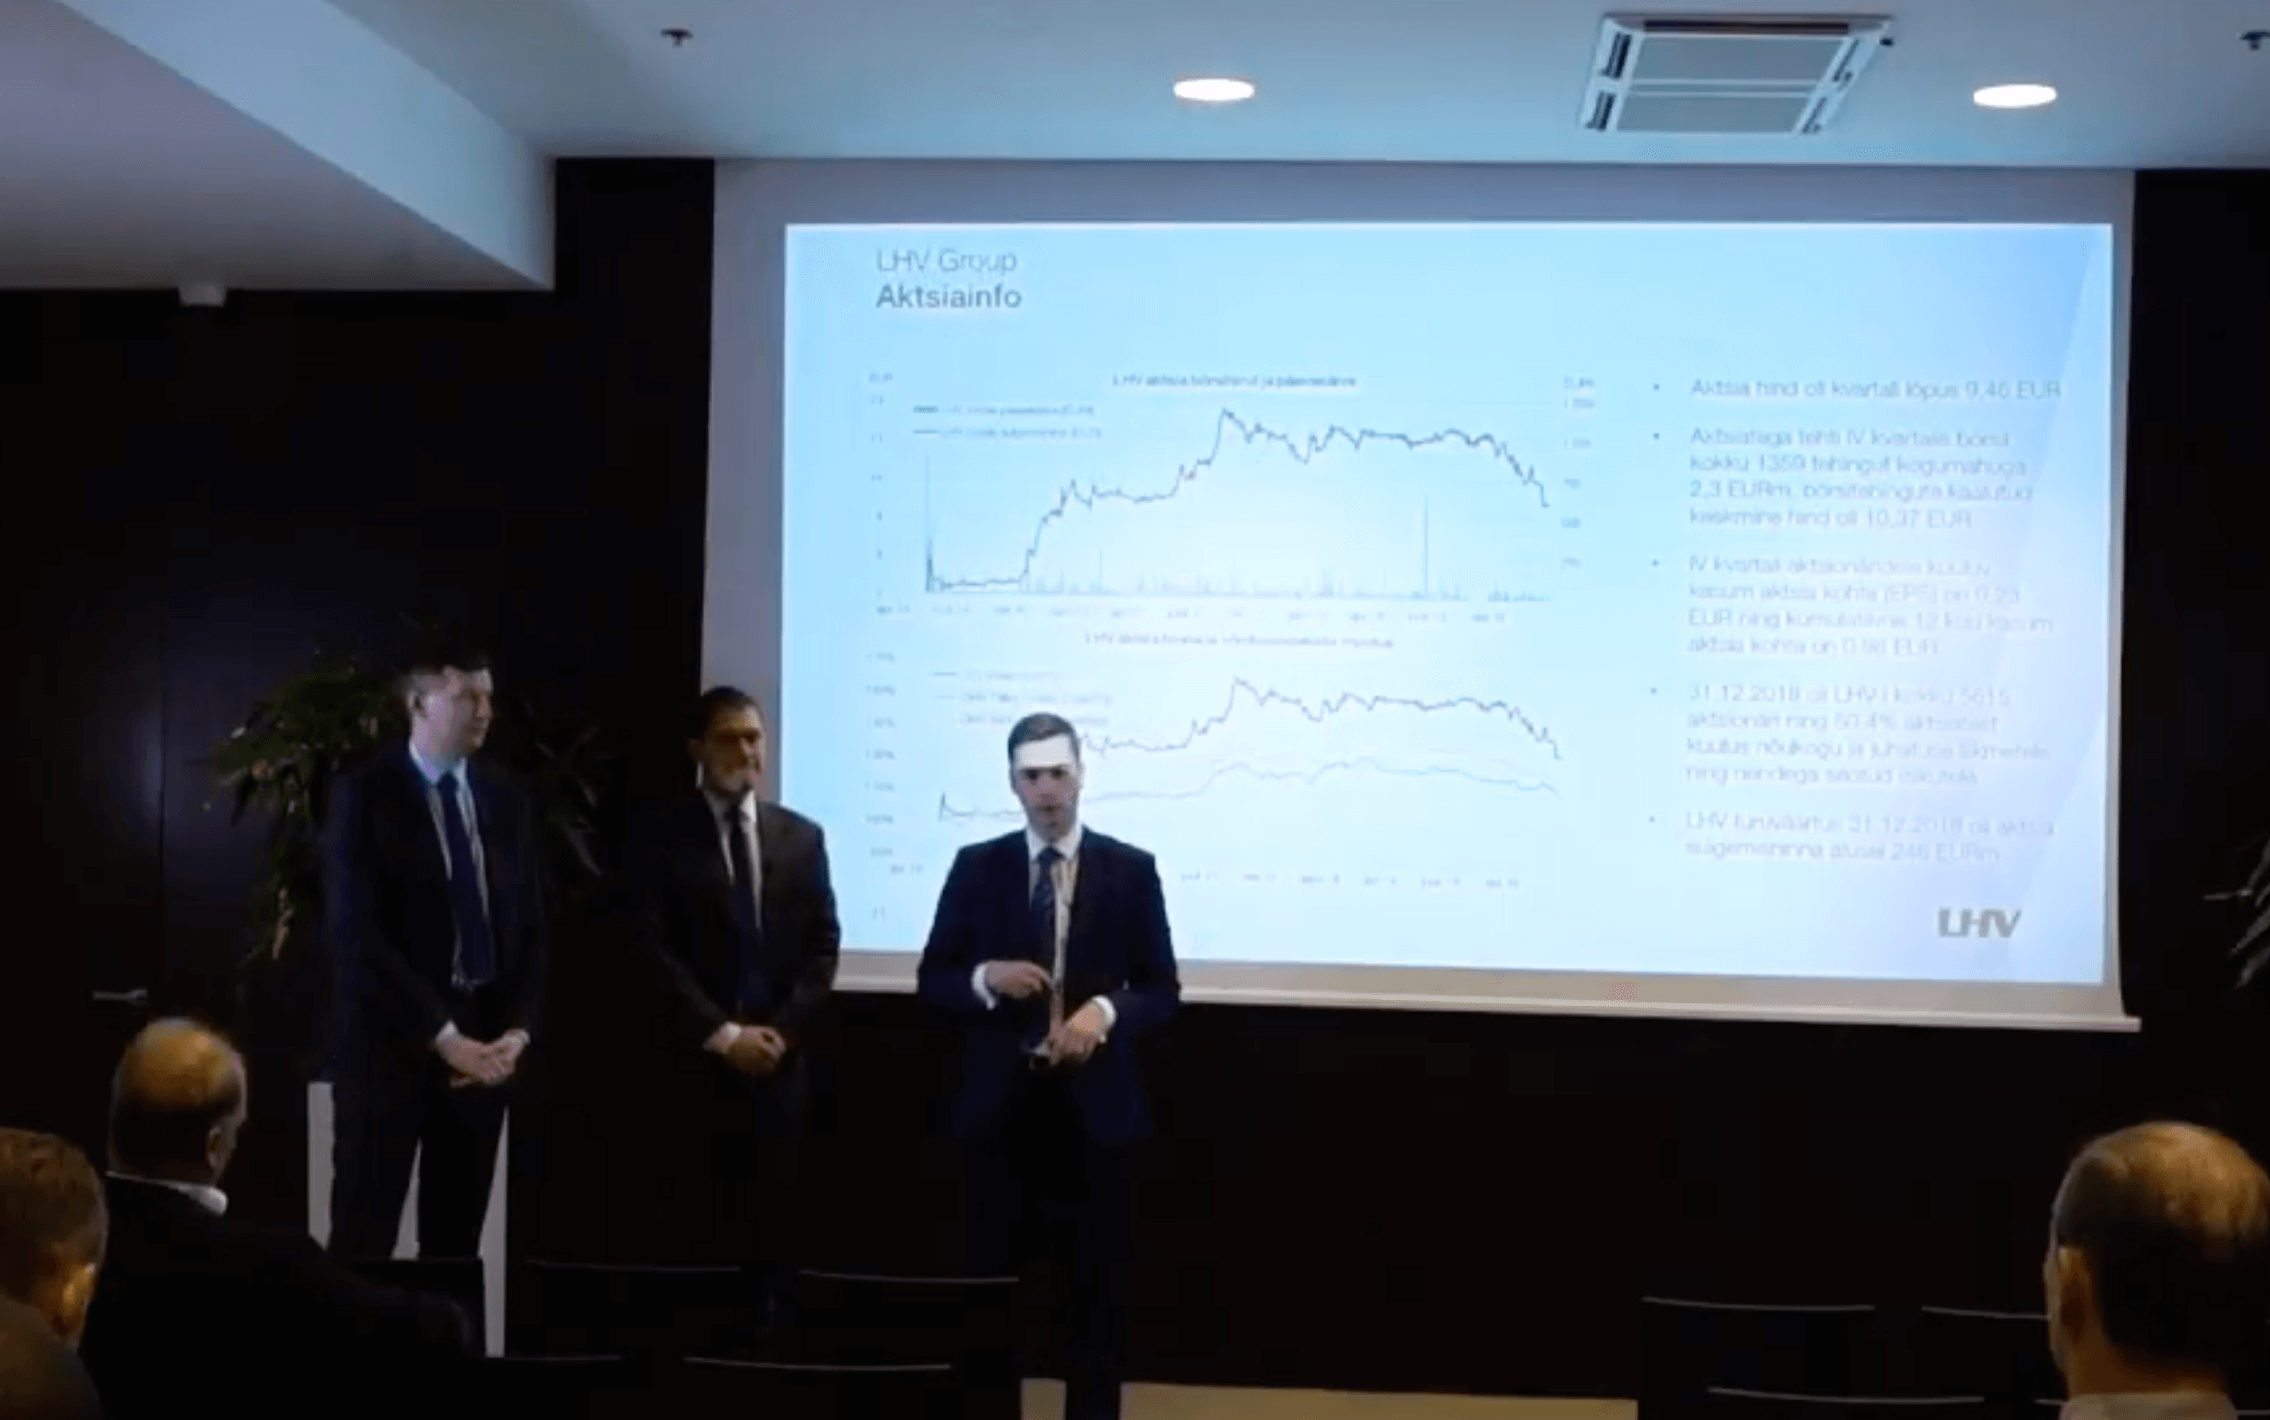 LHV Group презентация для инвесторов 29.01.2019